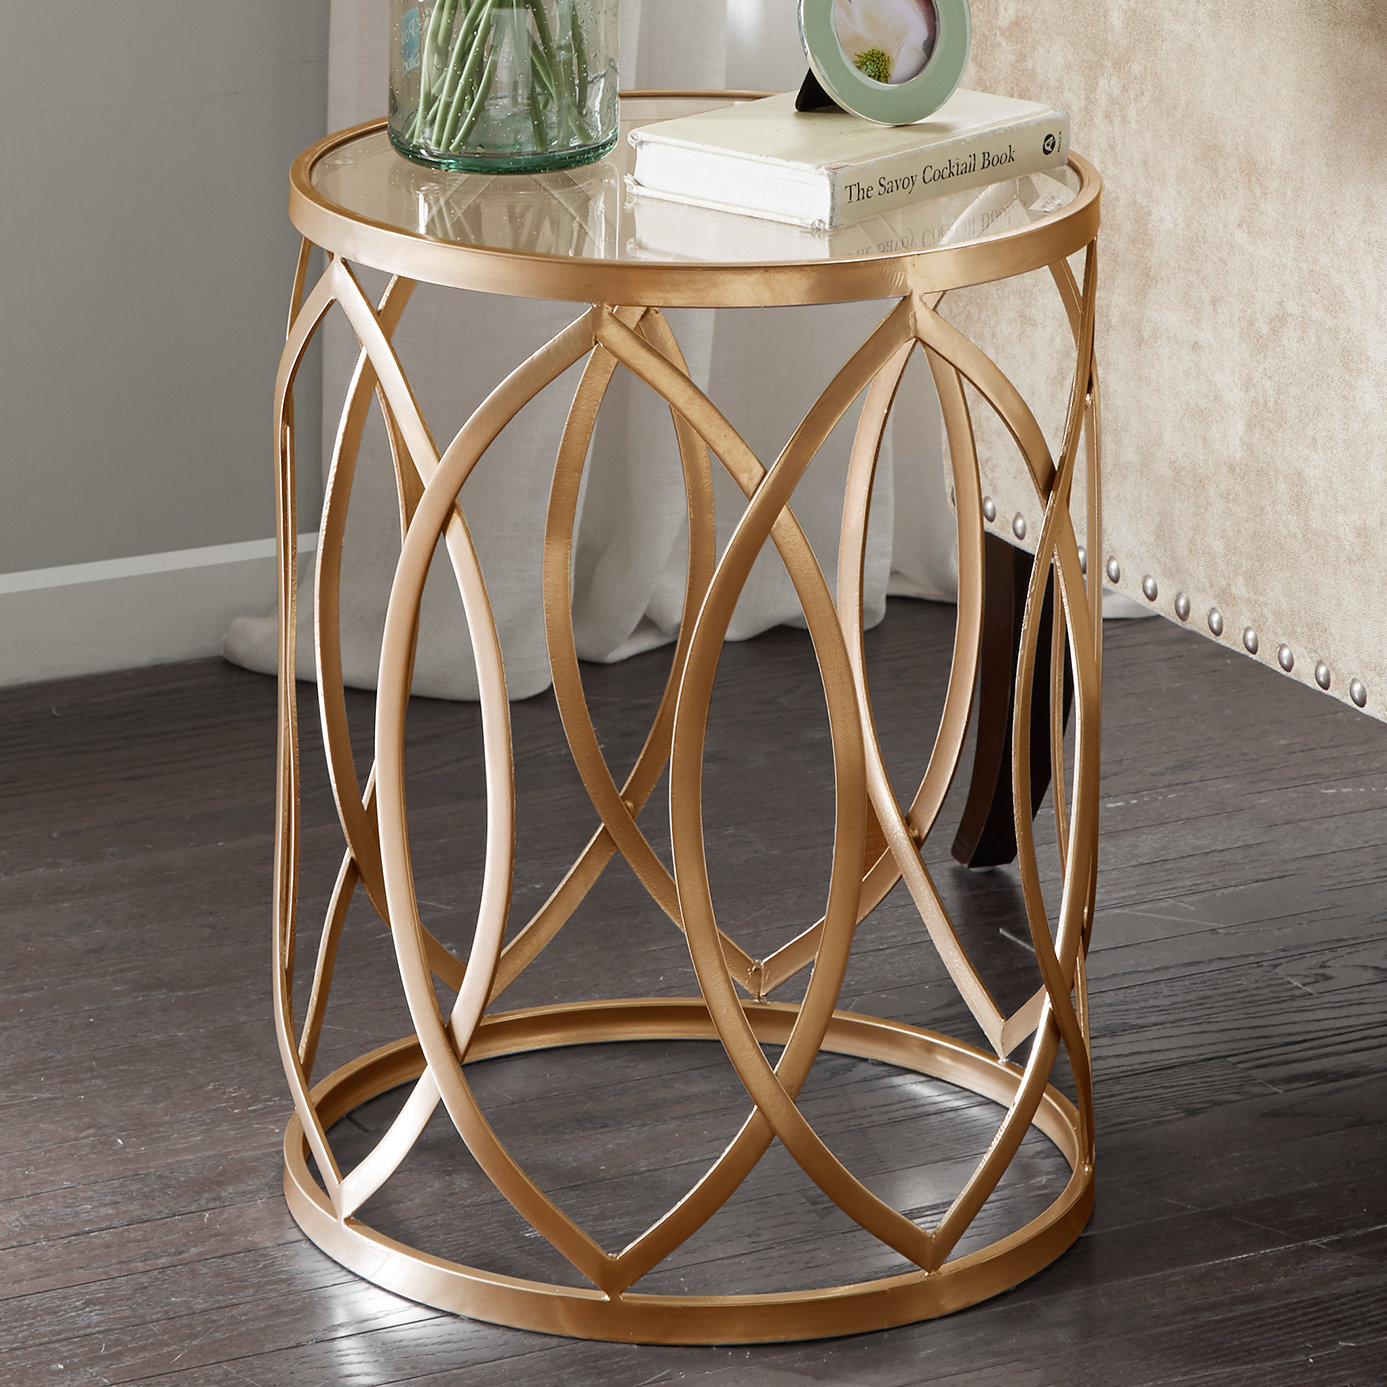 crewkerne metal eyelet end table reviews birch lane accent oval patio bamboo furniture unique dining tables ethan allen buffet hammary half moon console kitchen room shabby chic